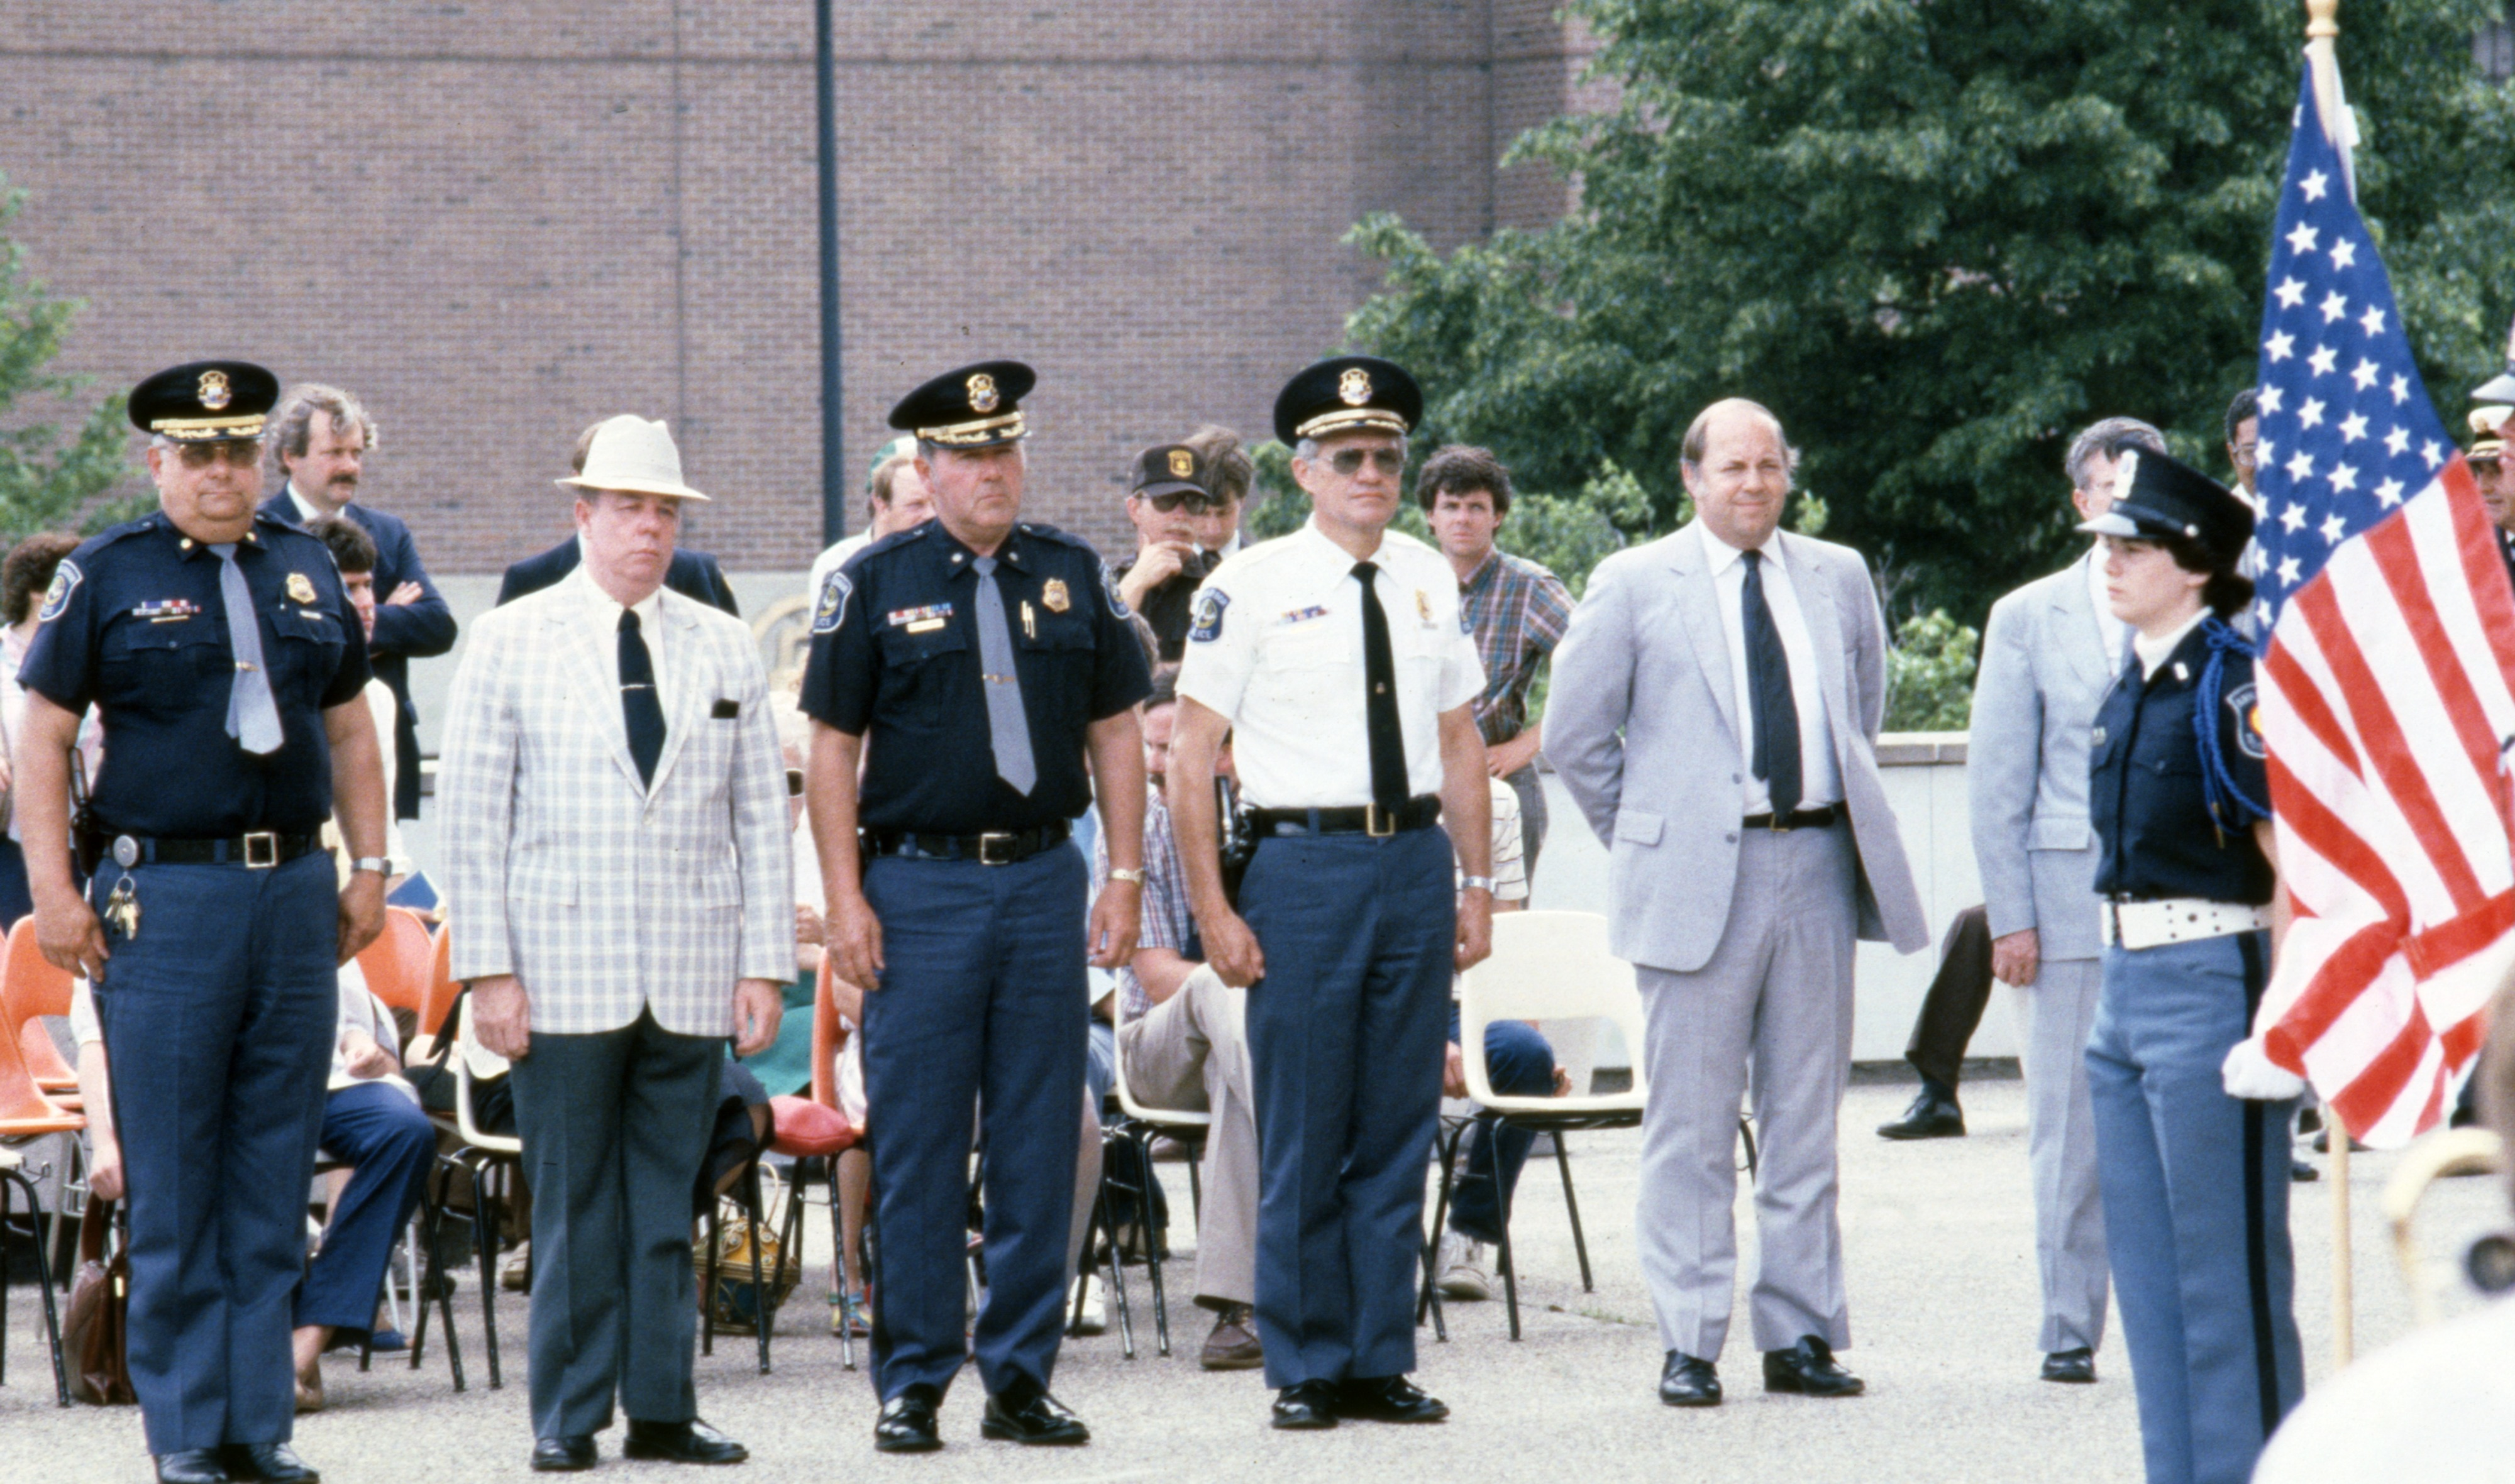 Ann Arbor Police Department Awards Ceremony, June 1984 image